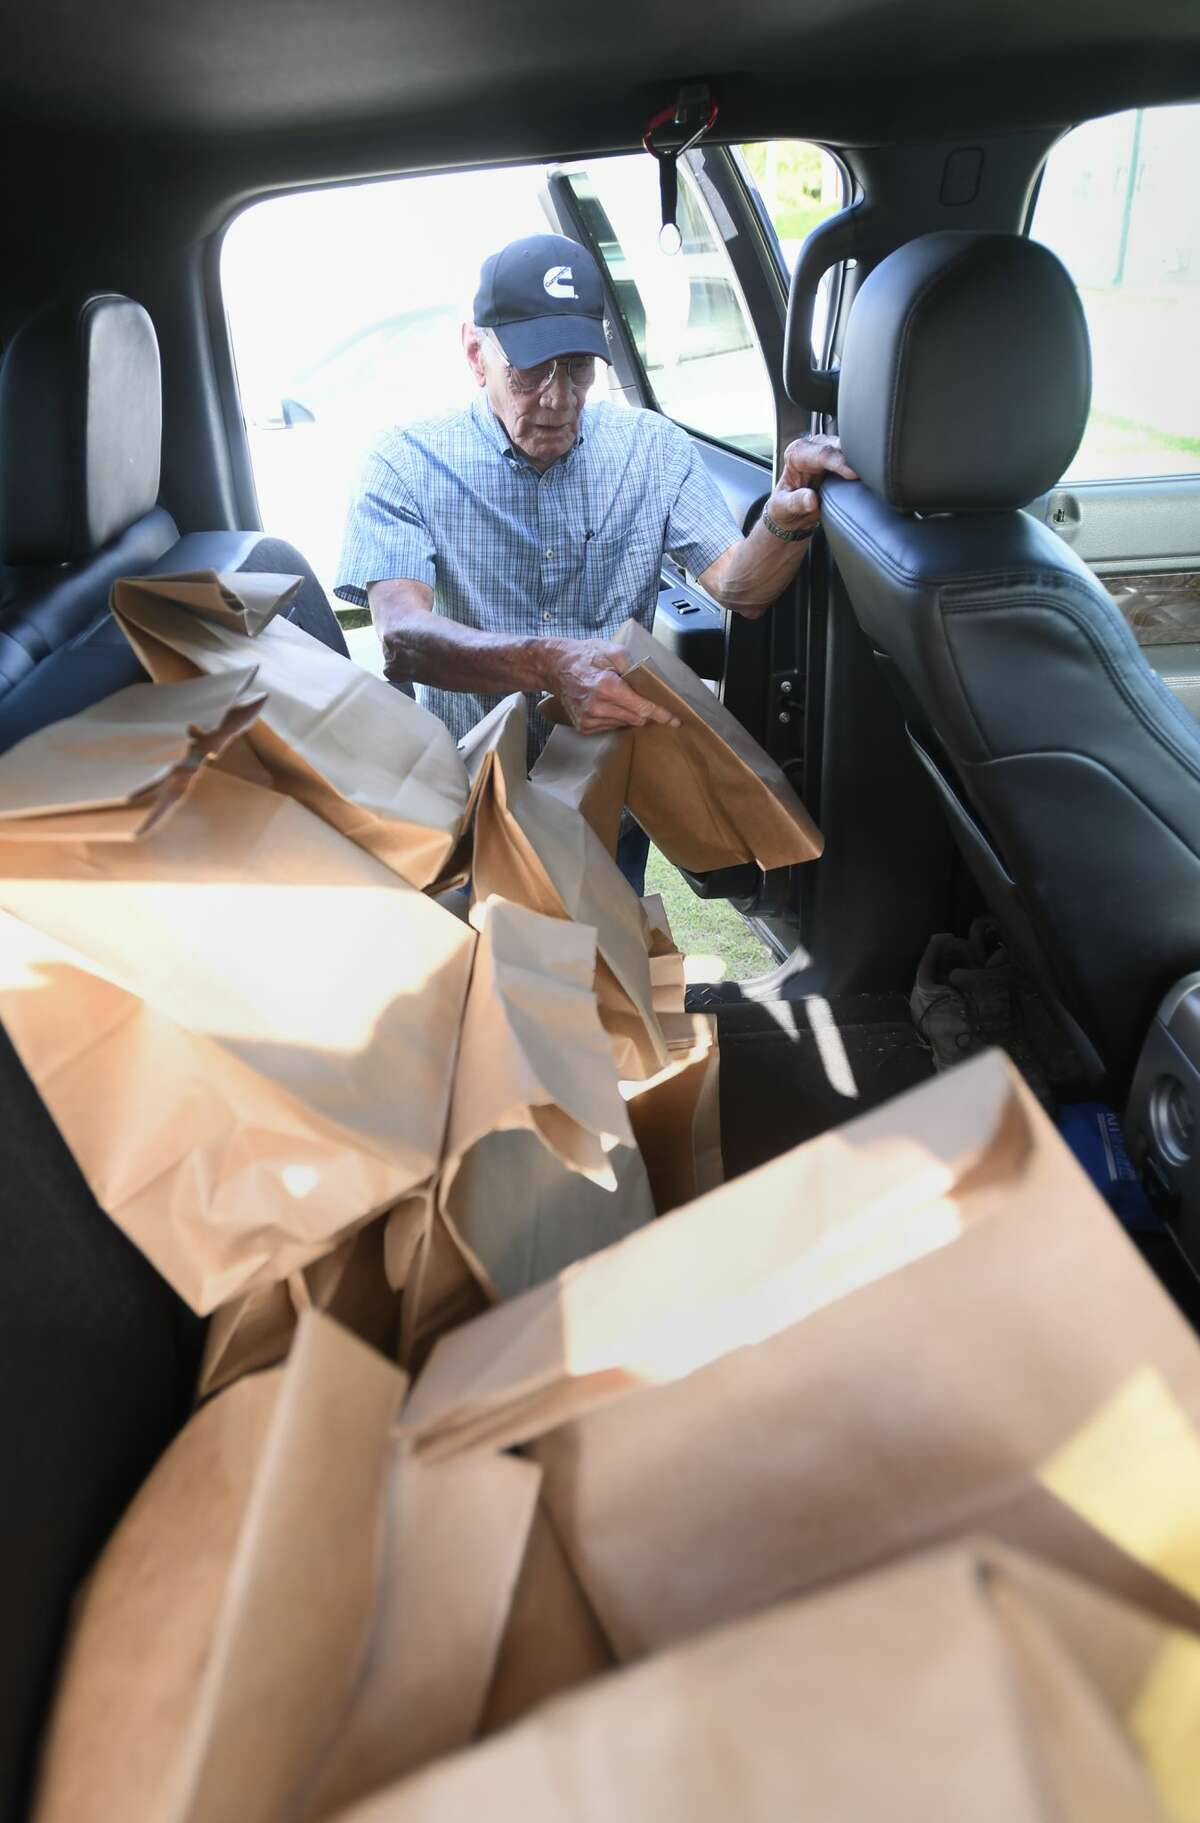 Meals on Wheels volunteers Daryl Ferguson loads his truck with bags of food before driving his route. Ferguson and his partner deliver food to 31 homes on his route. Photo taken Monday, 7/29/19